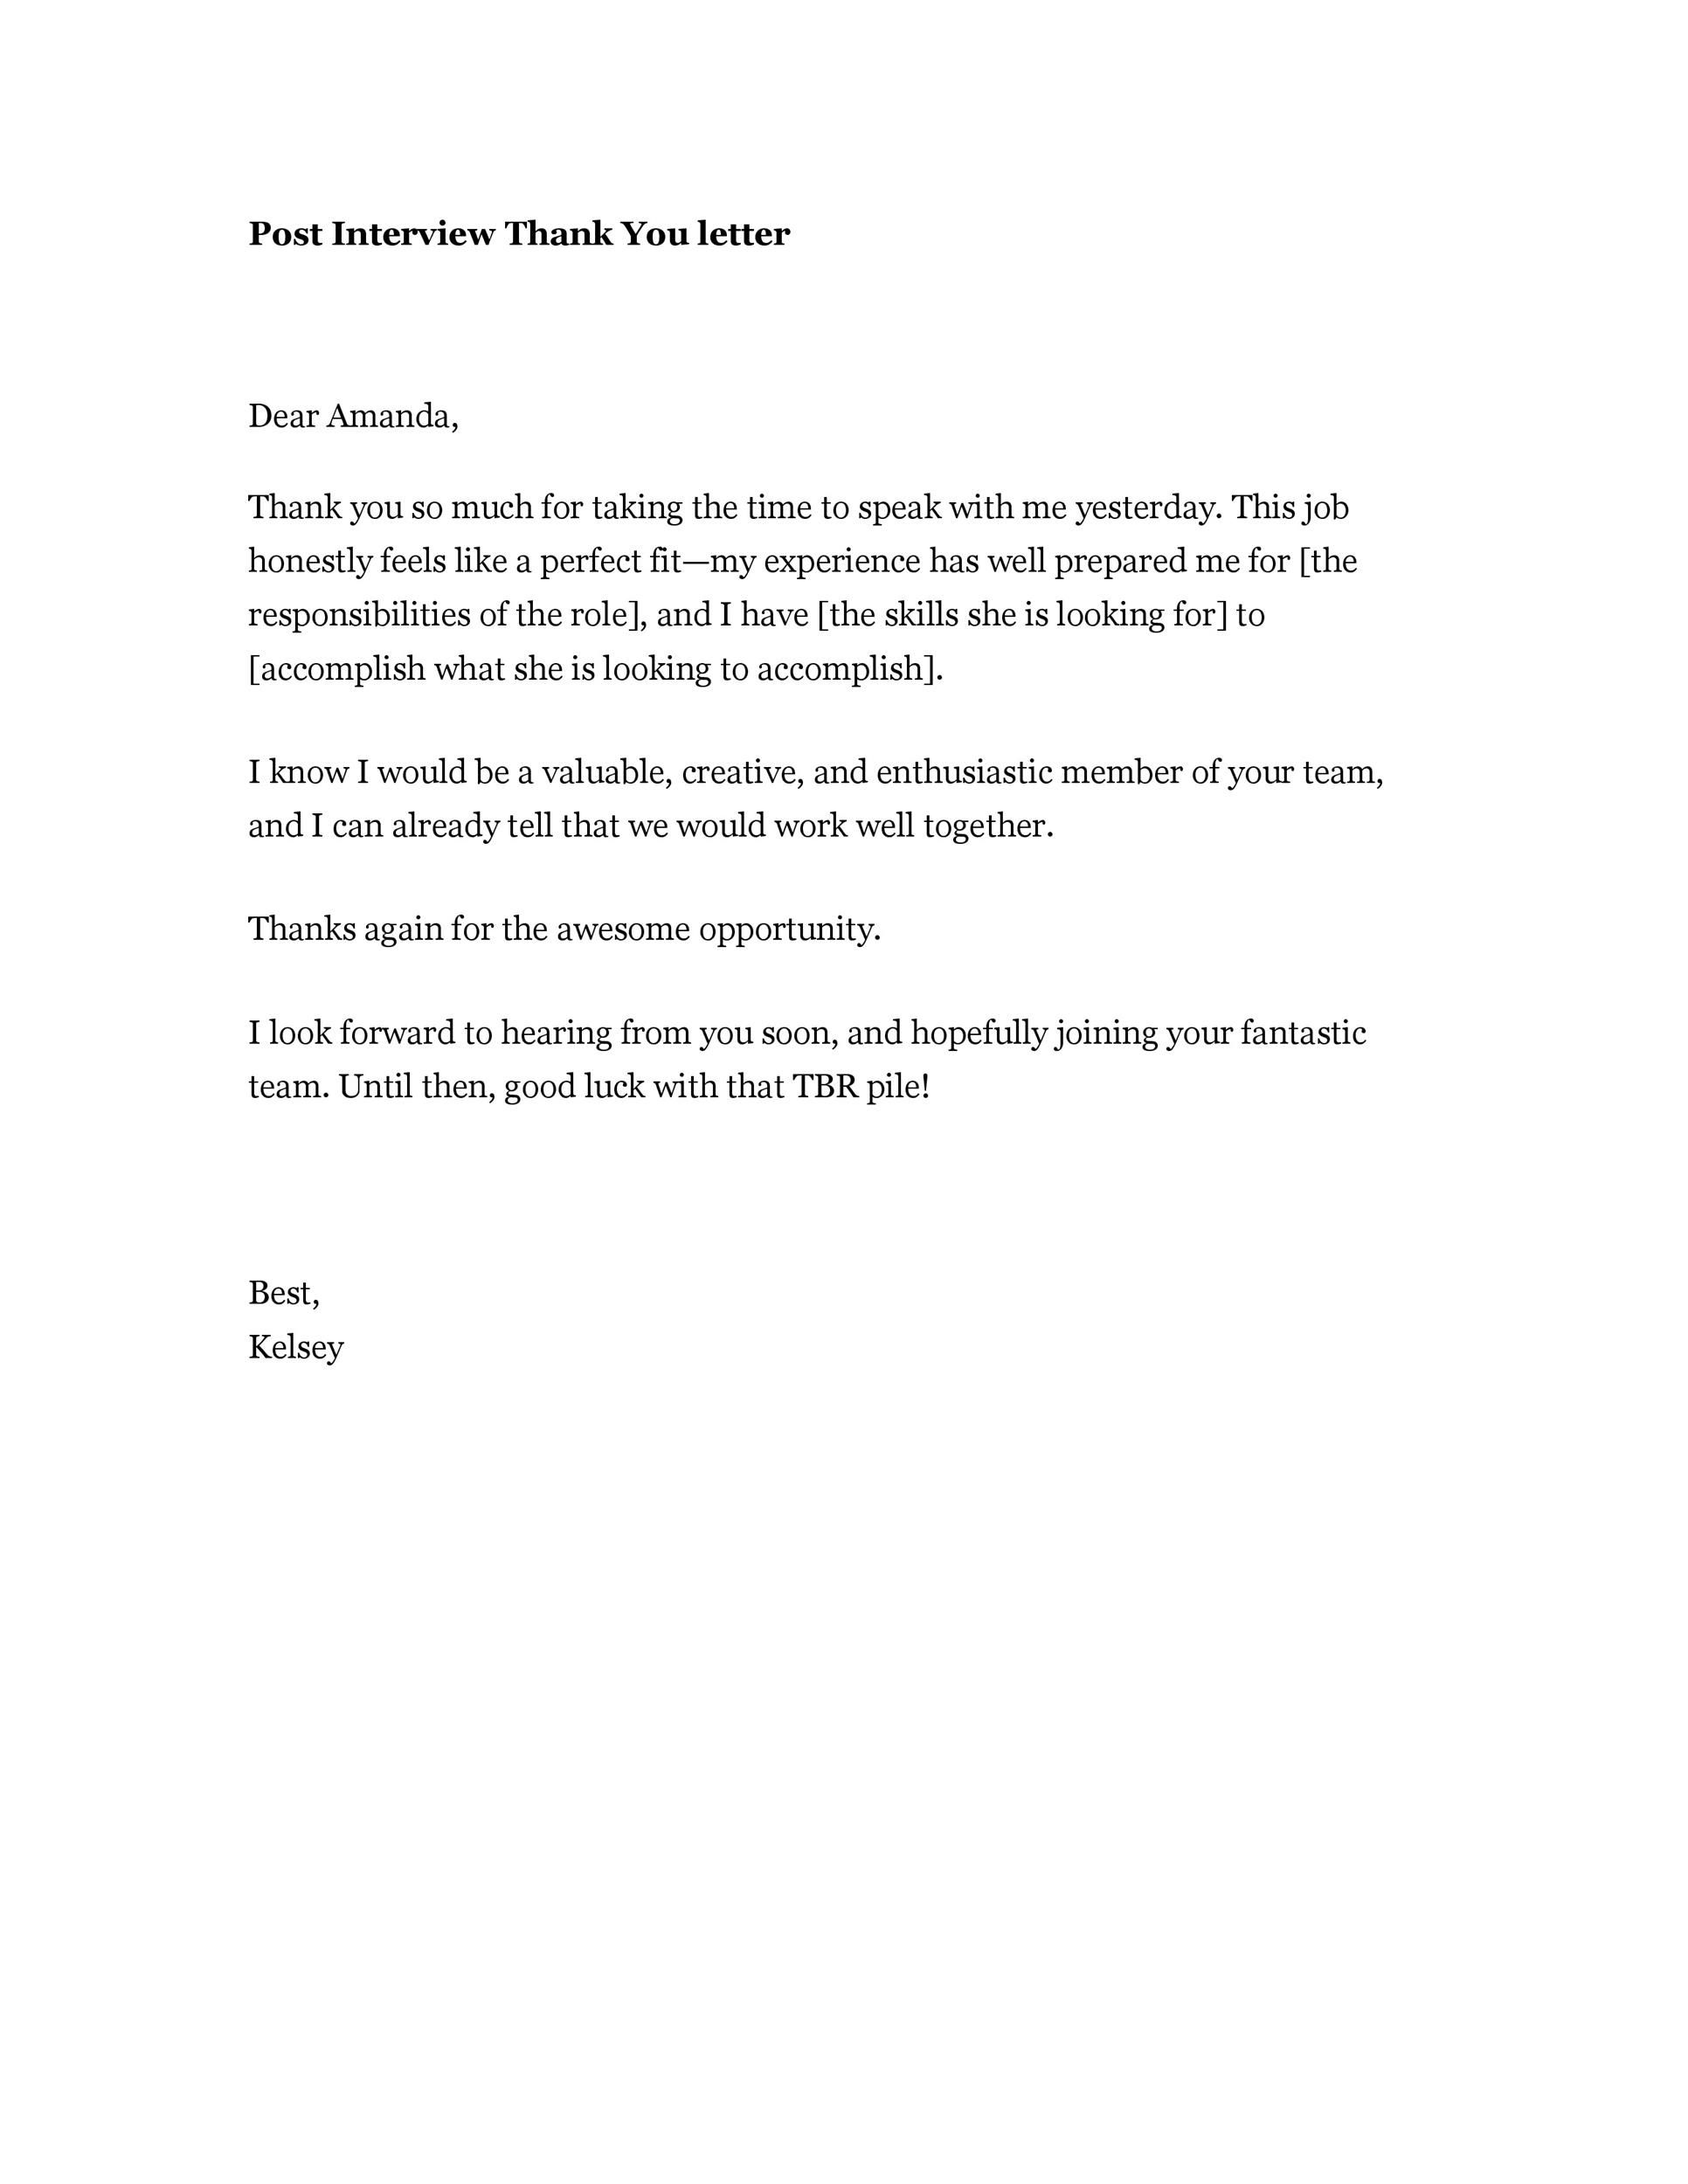 007 Archaicawful Thank You Note Template Job Interview Highest Quality  Card Letter Sample AfterFull